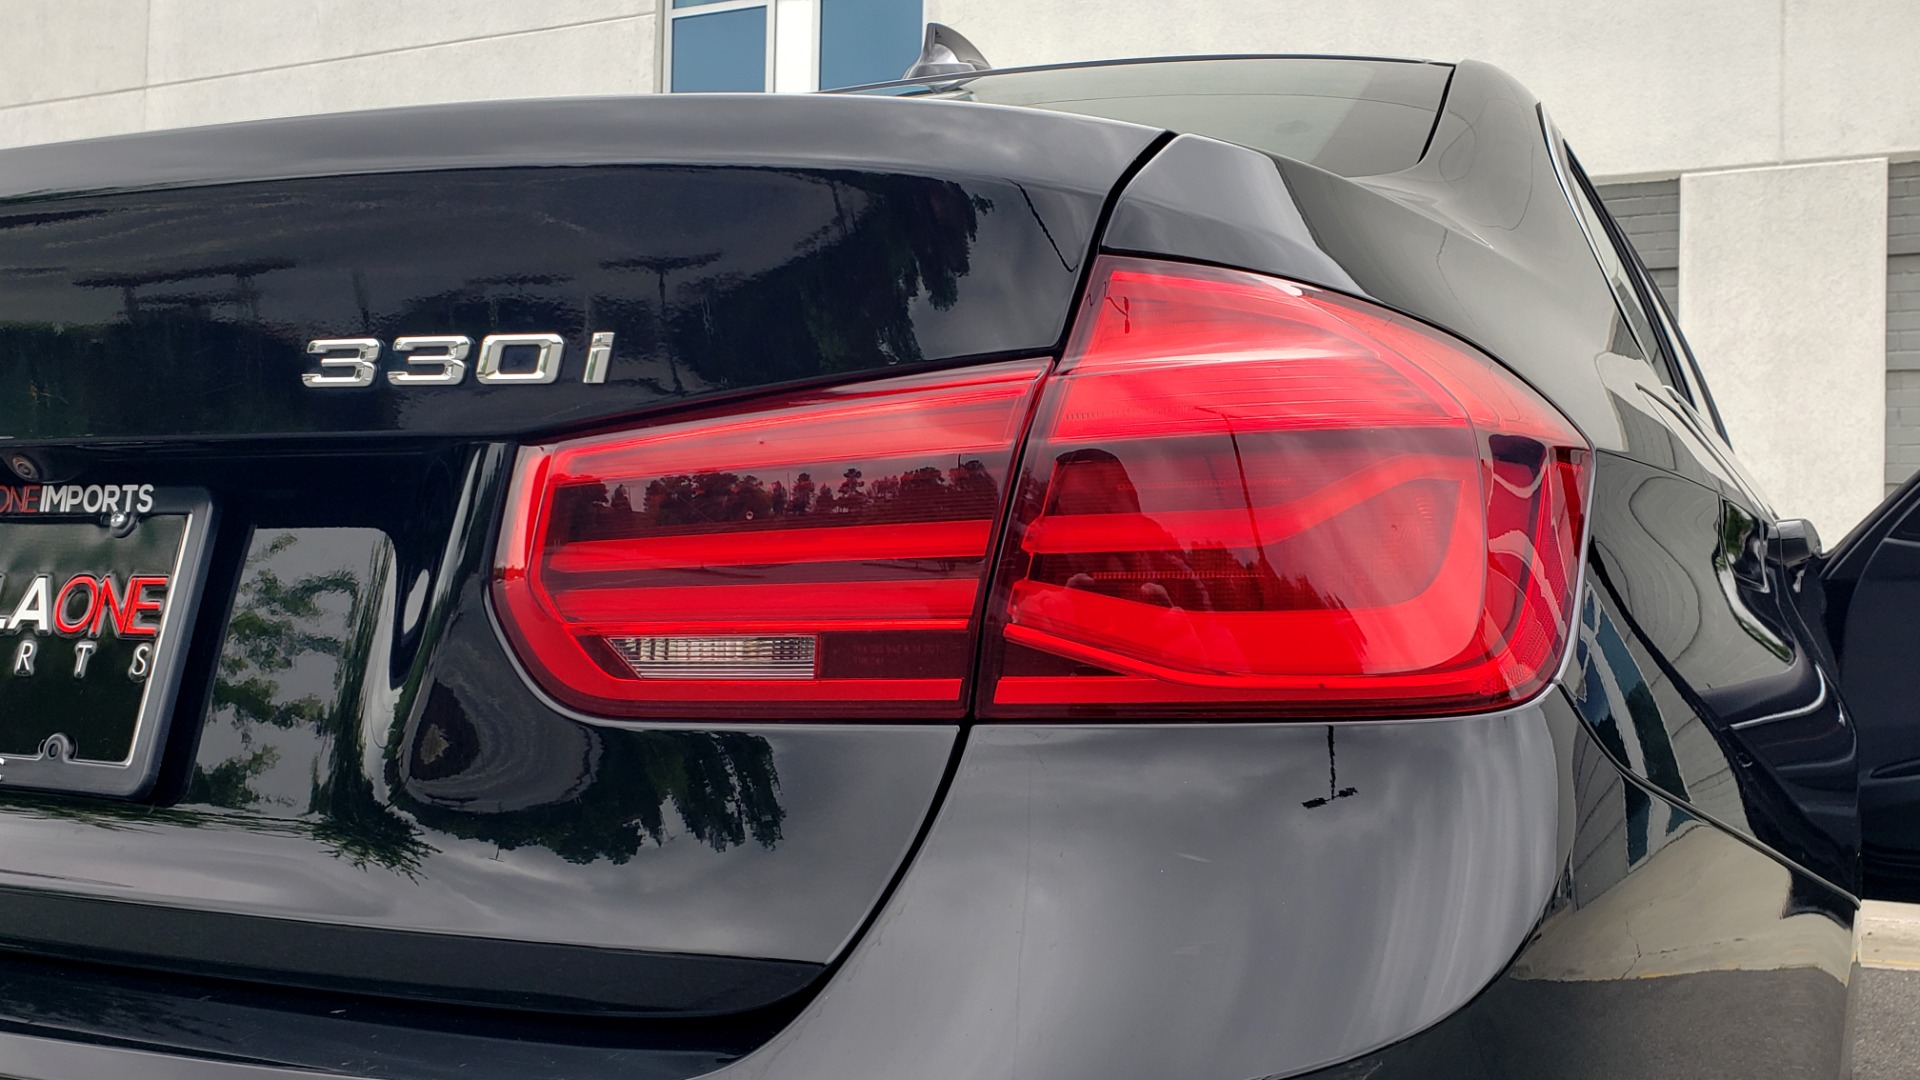 Used 2018 BMW 3 SERIES 330IXDRIVE / CONV PKG / NAV / SUNROOF / HTD STS / REARVIEW for sale $26,552 at Formula Imports in Charlotte NC 28227 28